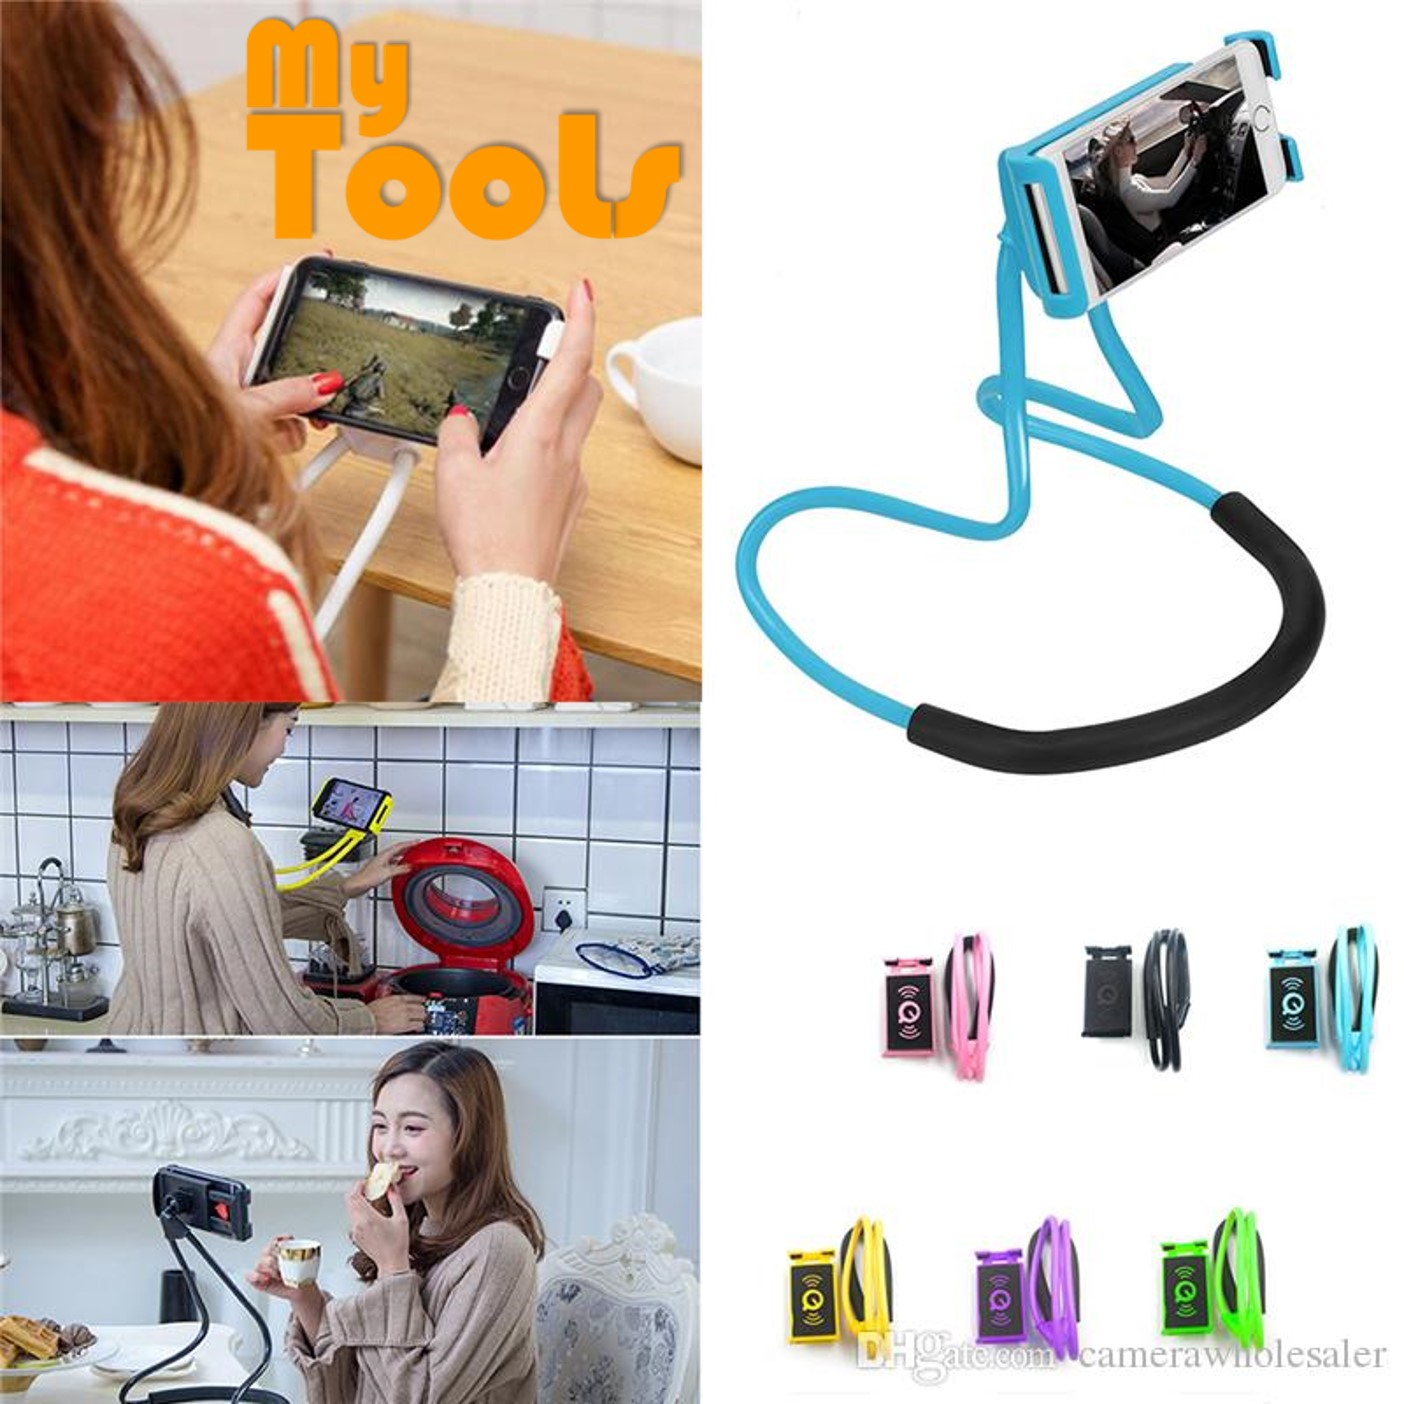 Mytools Mobile Phone Bracket Holder Hanging Neck 360 Lazy Necklace Bracket Slacker